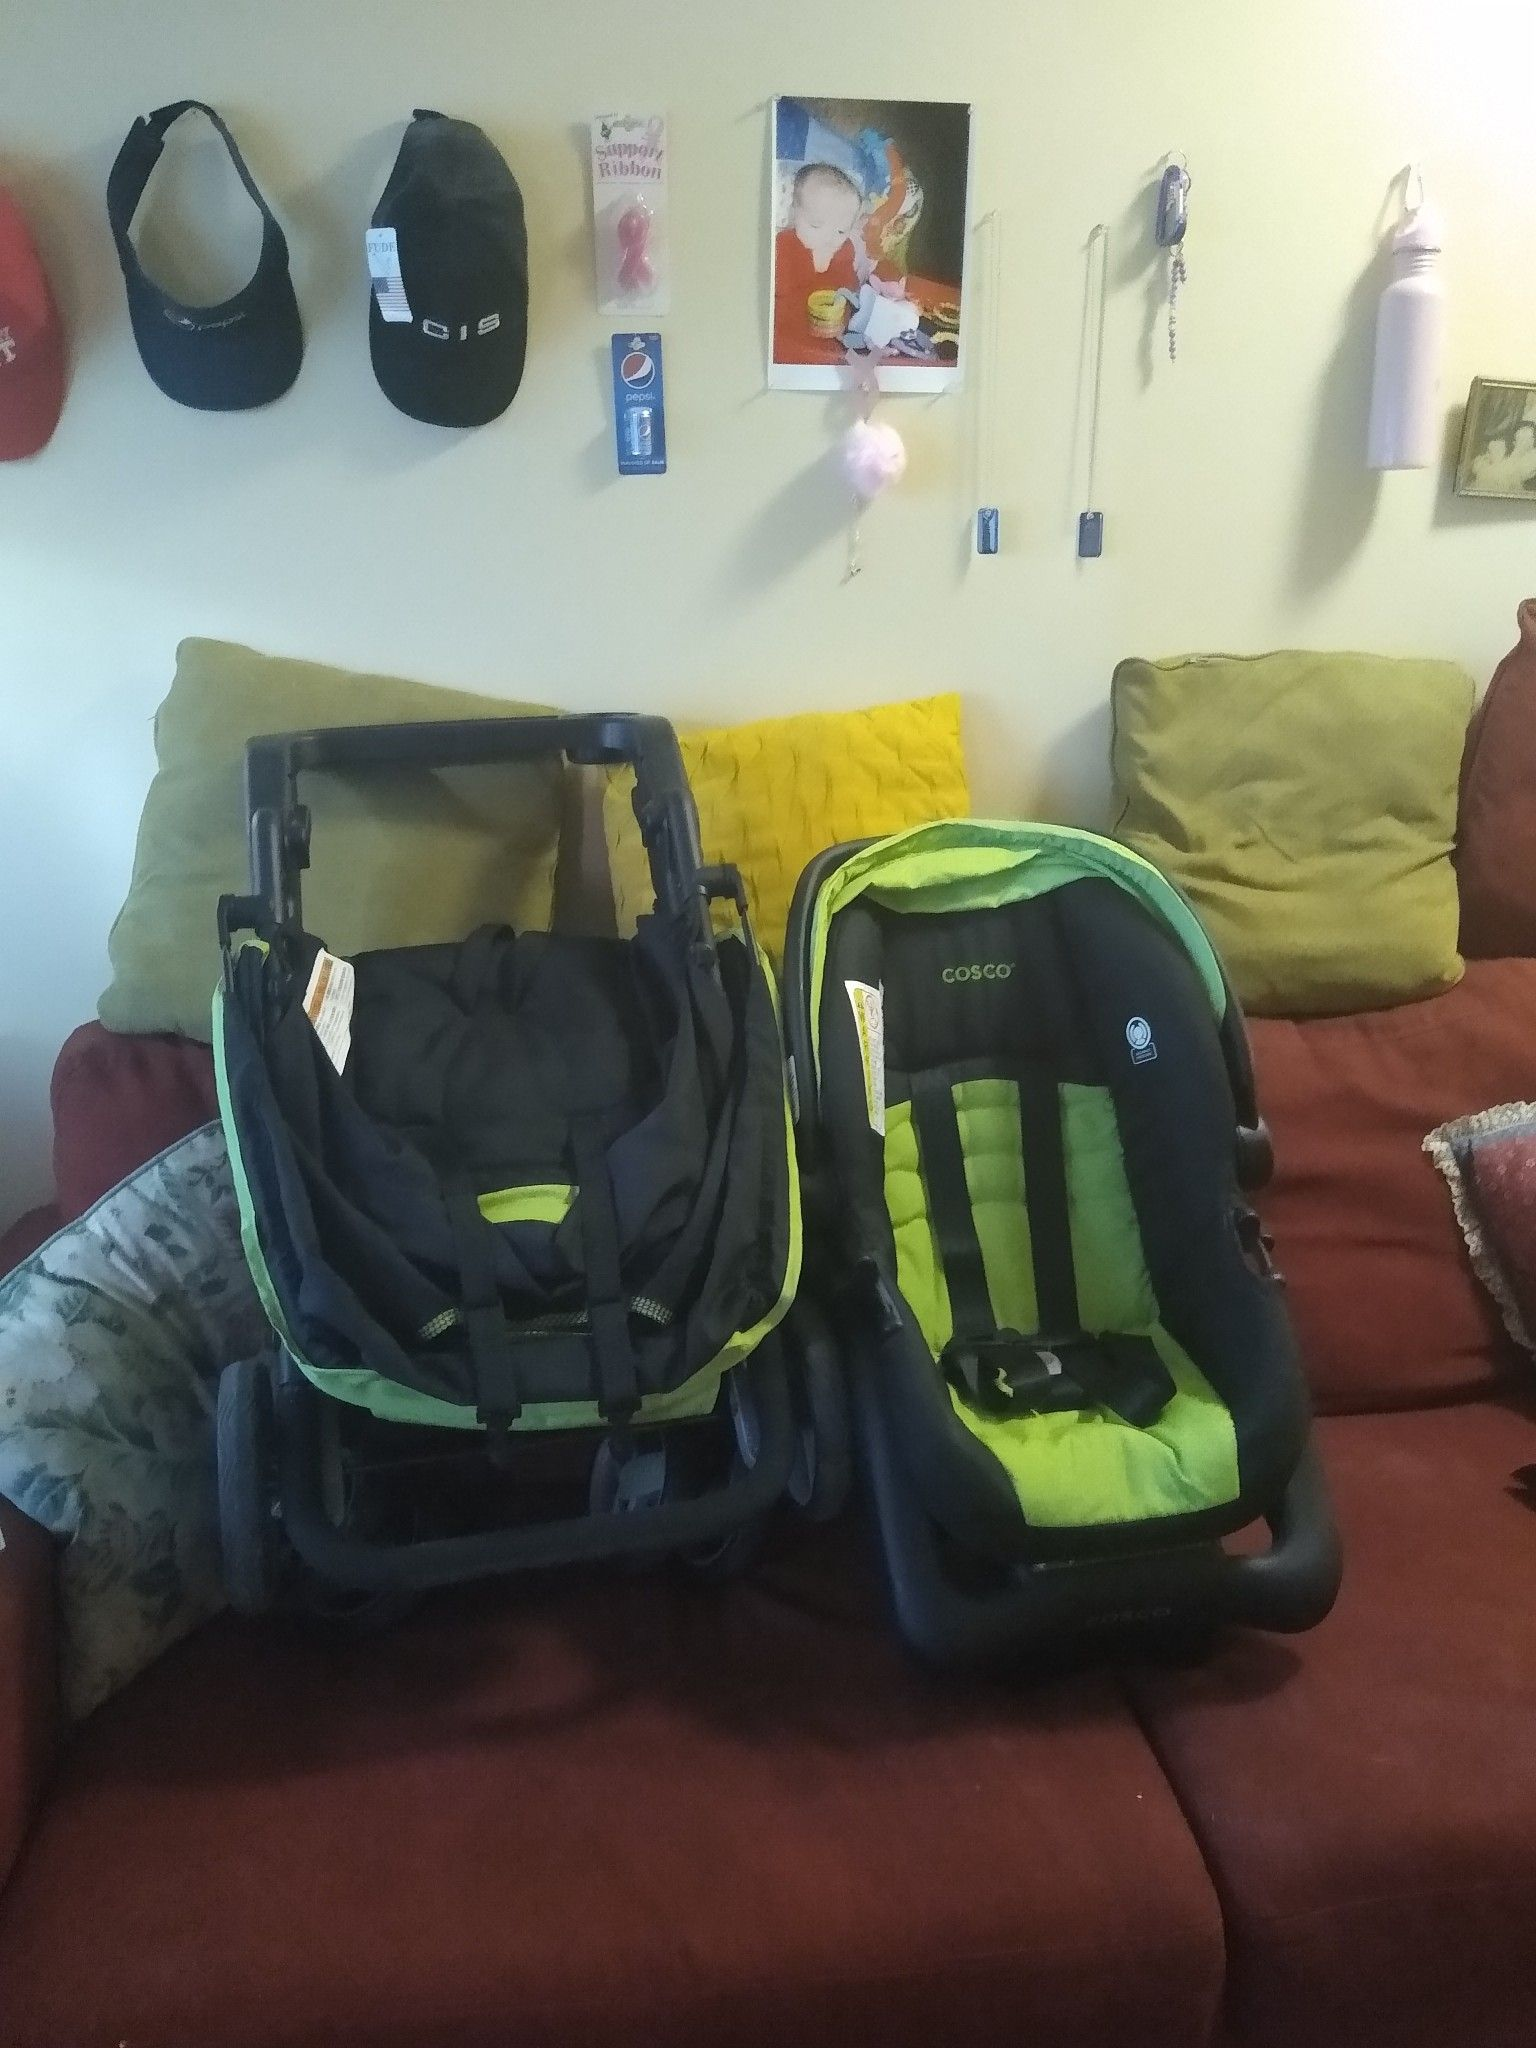 Stroller and car seat have to go tonight or Monday asap